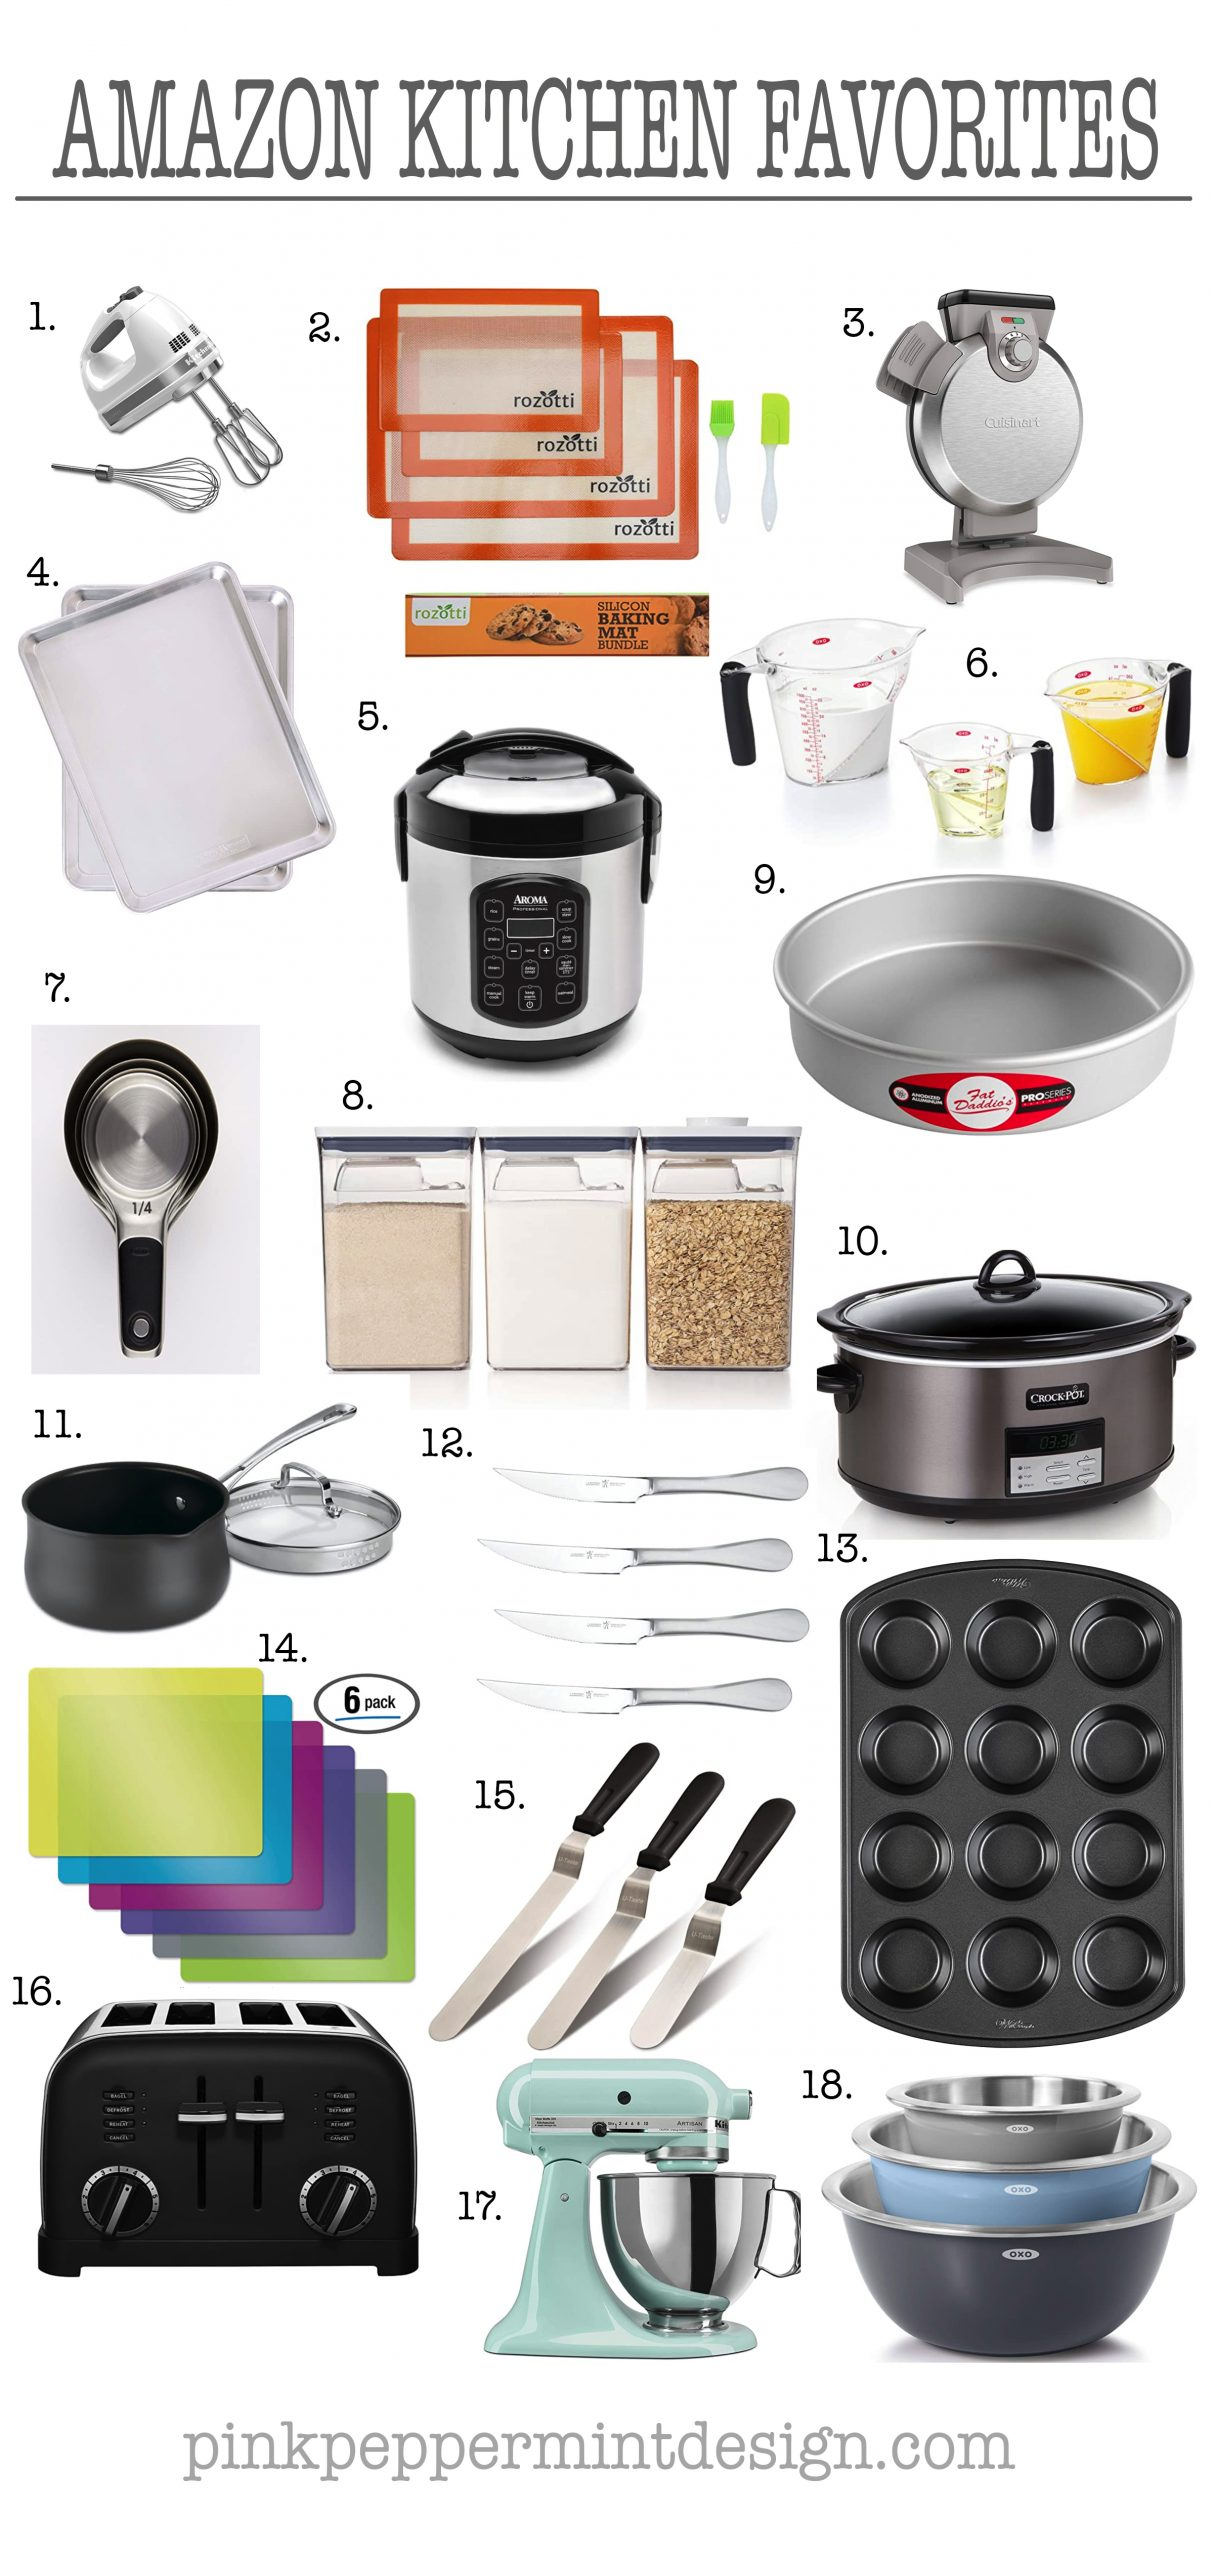 Favorite Amazon Kitchen Products